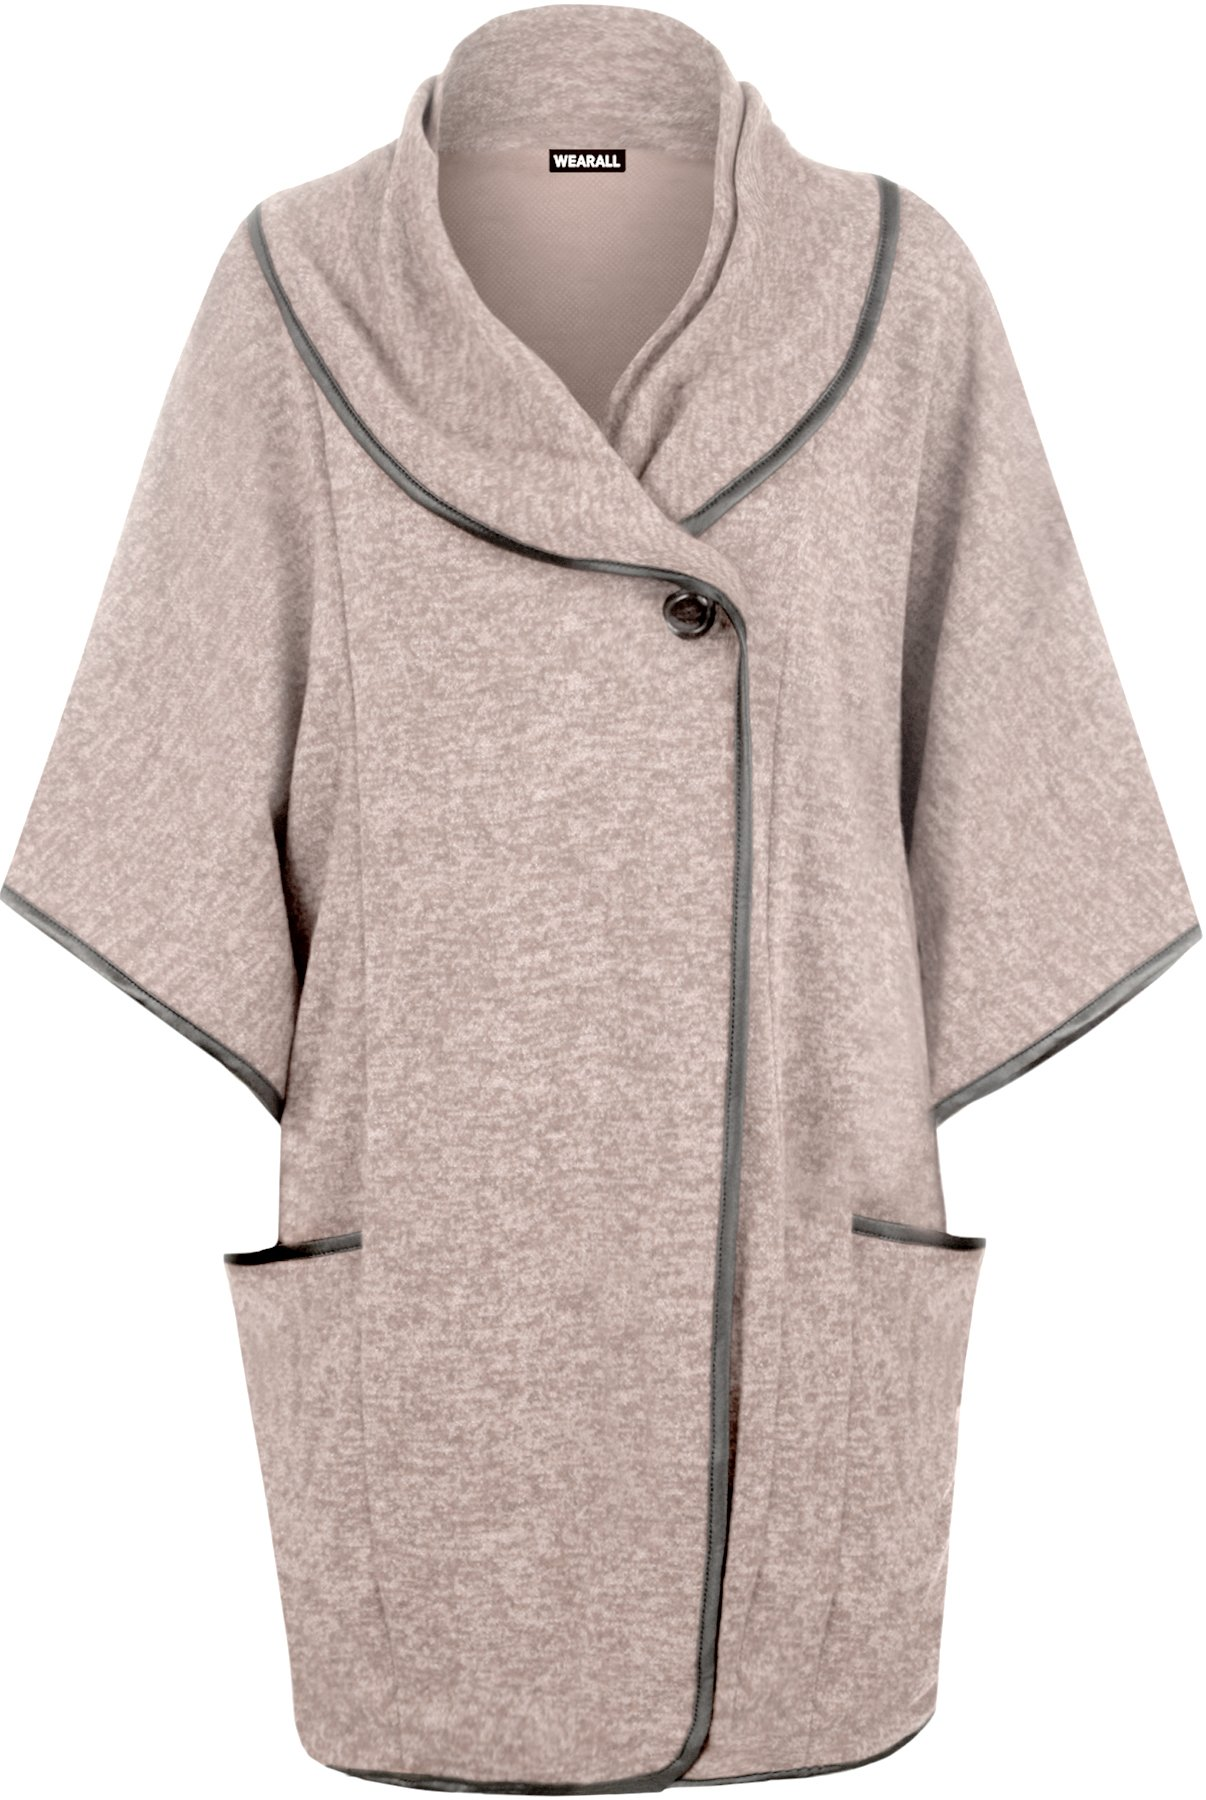 WearAll Women's Cowl Neck Button Open Pocket Sleeve Poncho - Pink - One Size